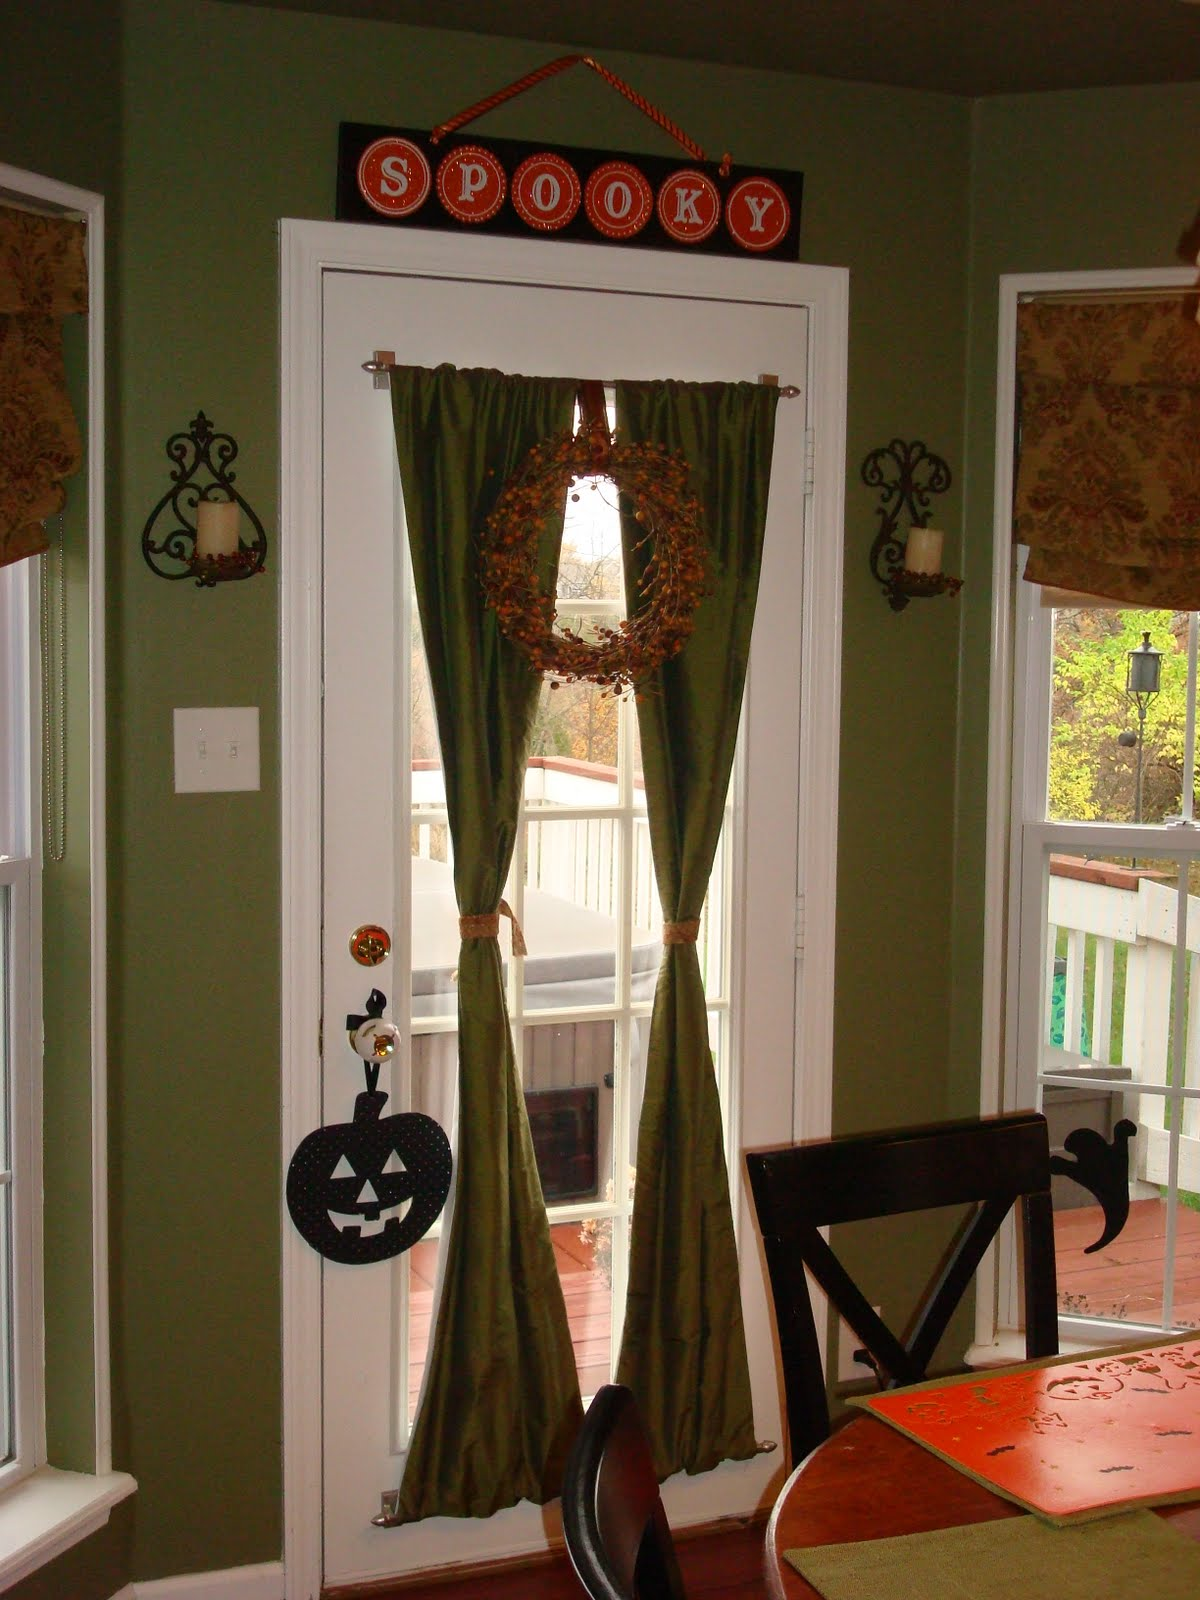 Privacy drapes for glass door